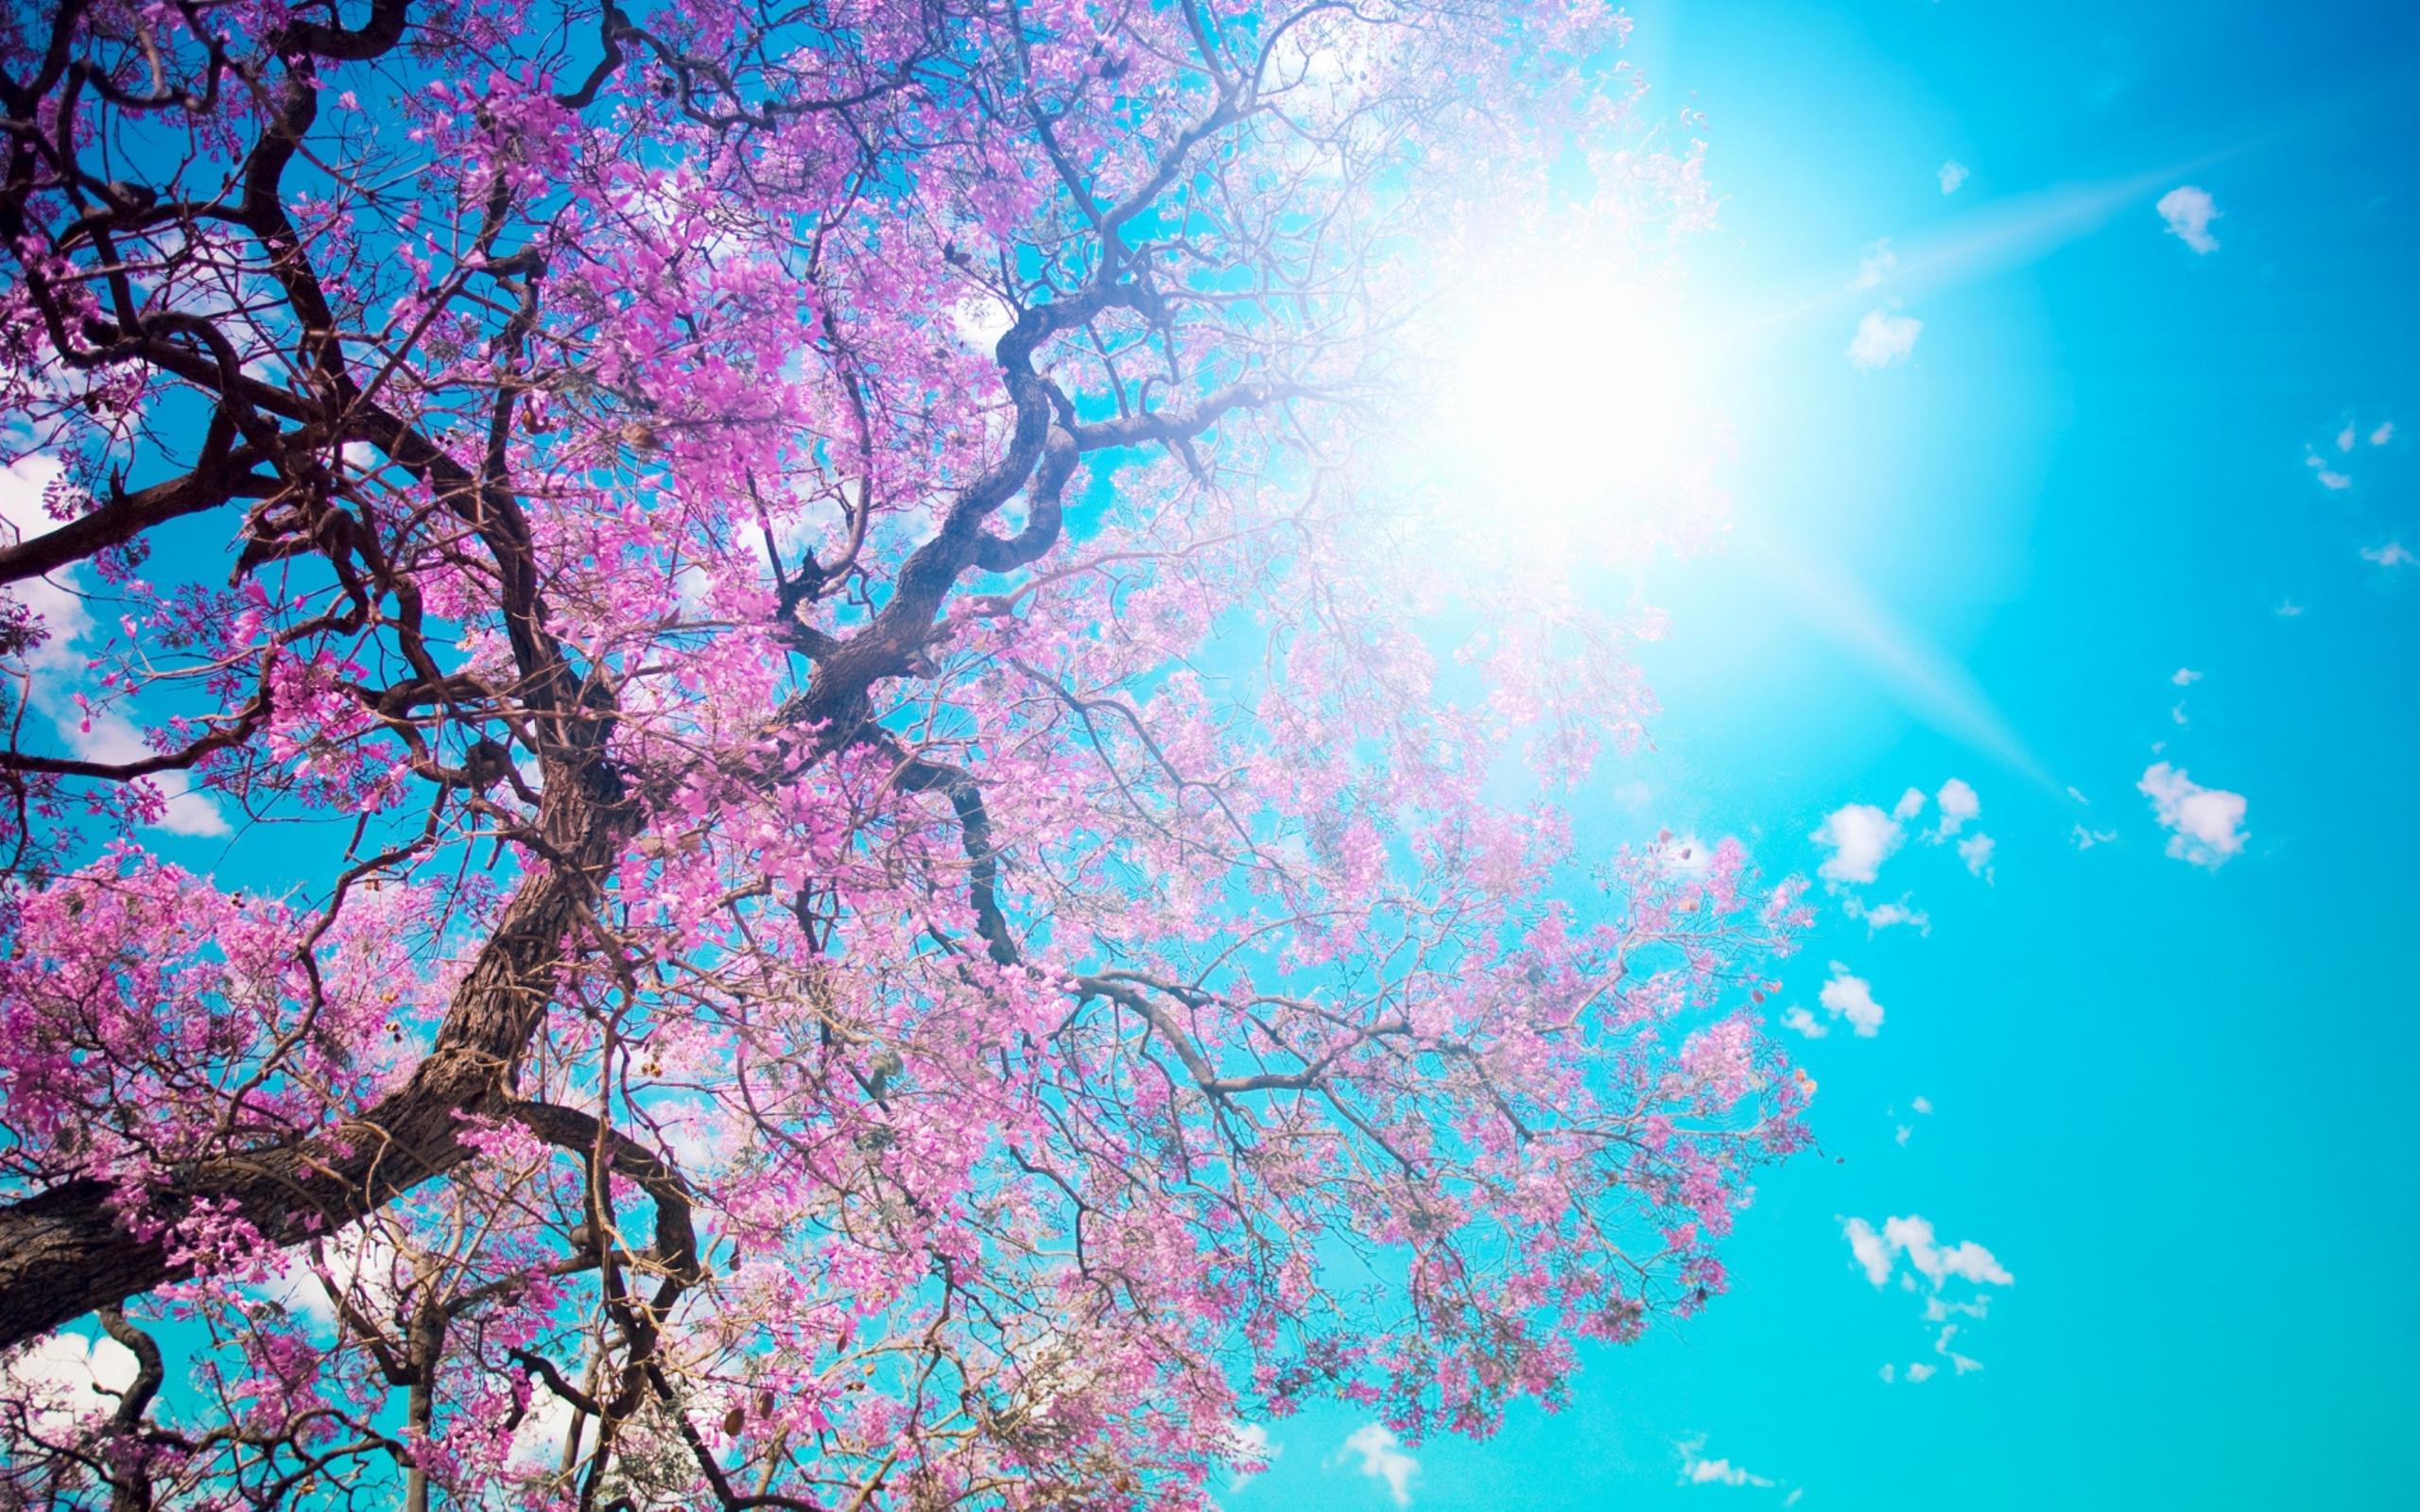 Branches With Pink Flowers In The Sunlight Wallpaper Download 2560x1600